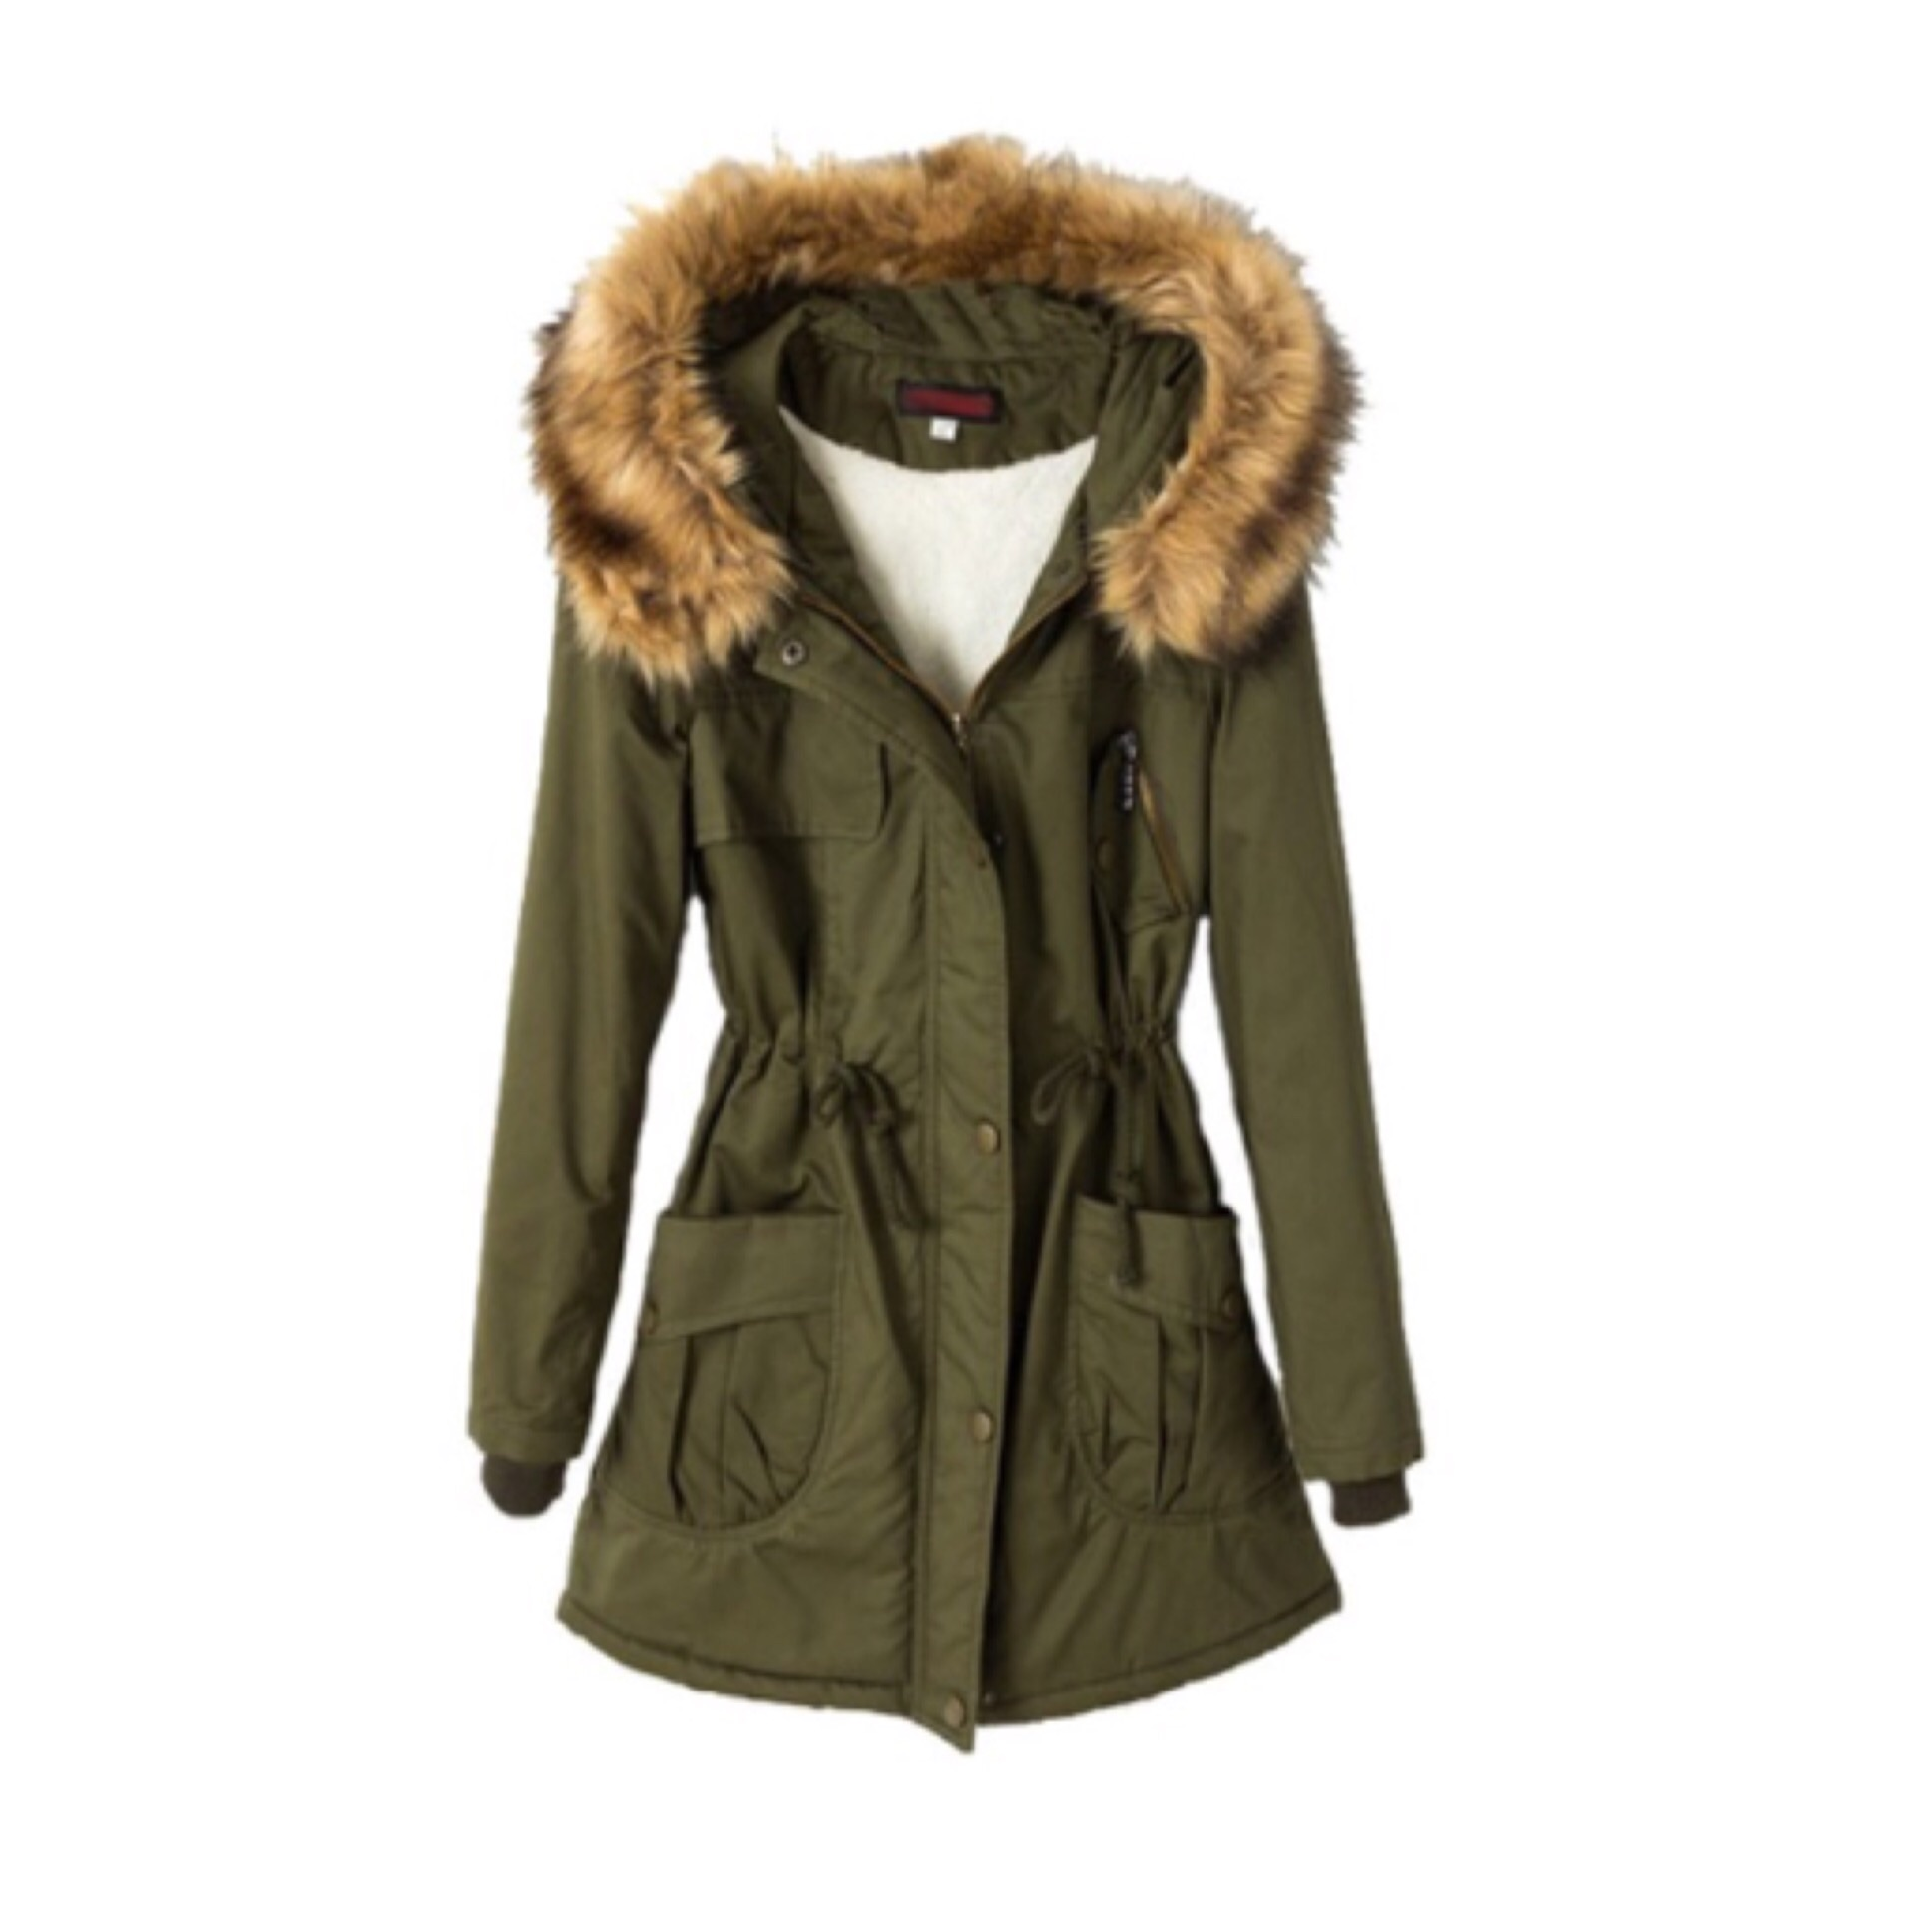 Fur Hooded Parka Jacket